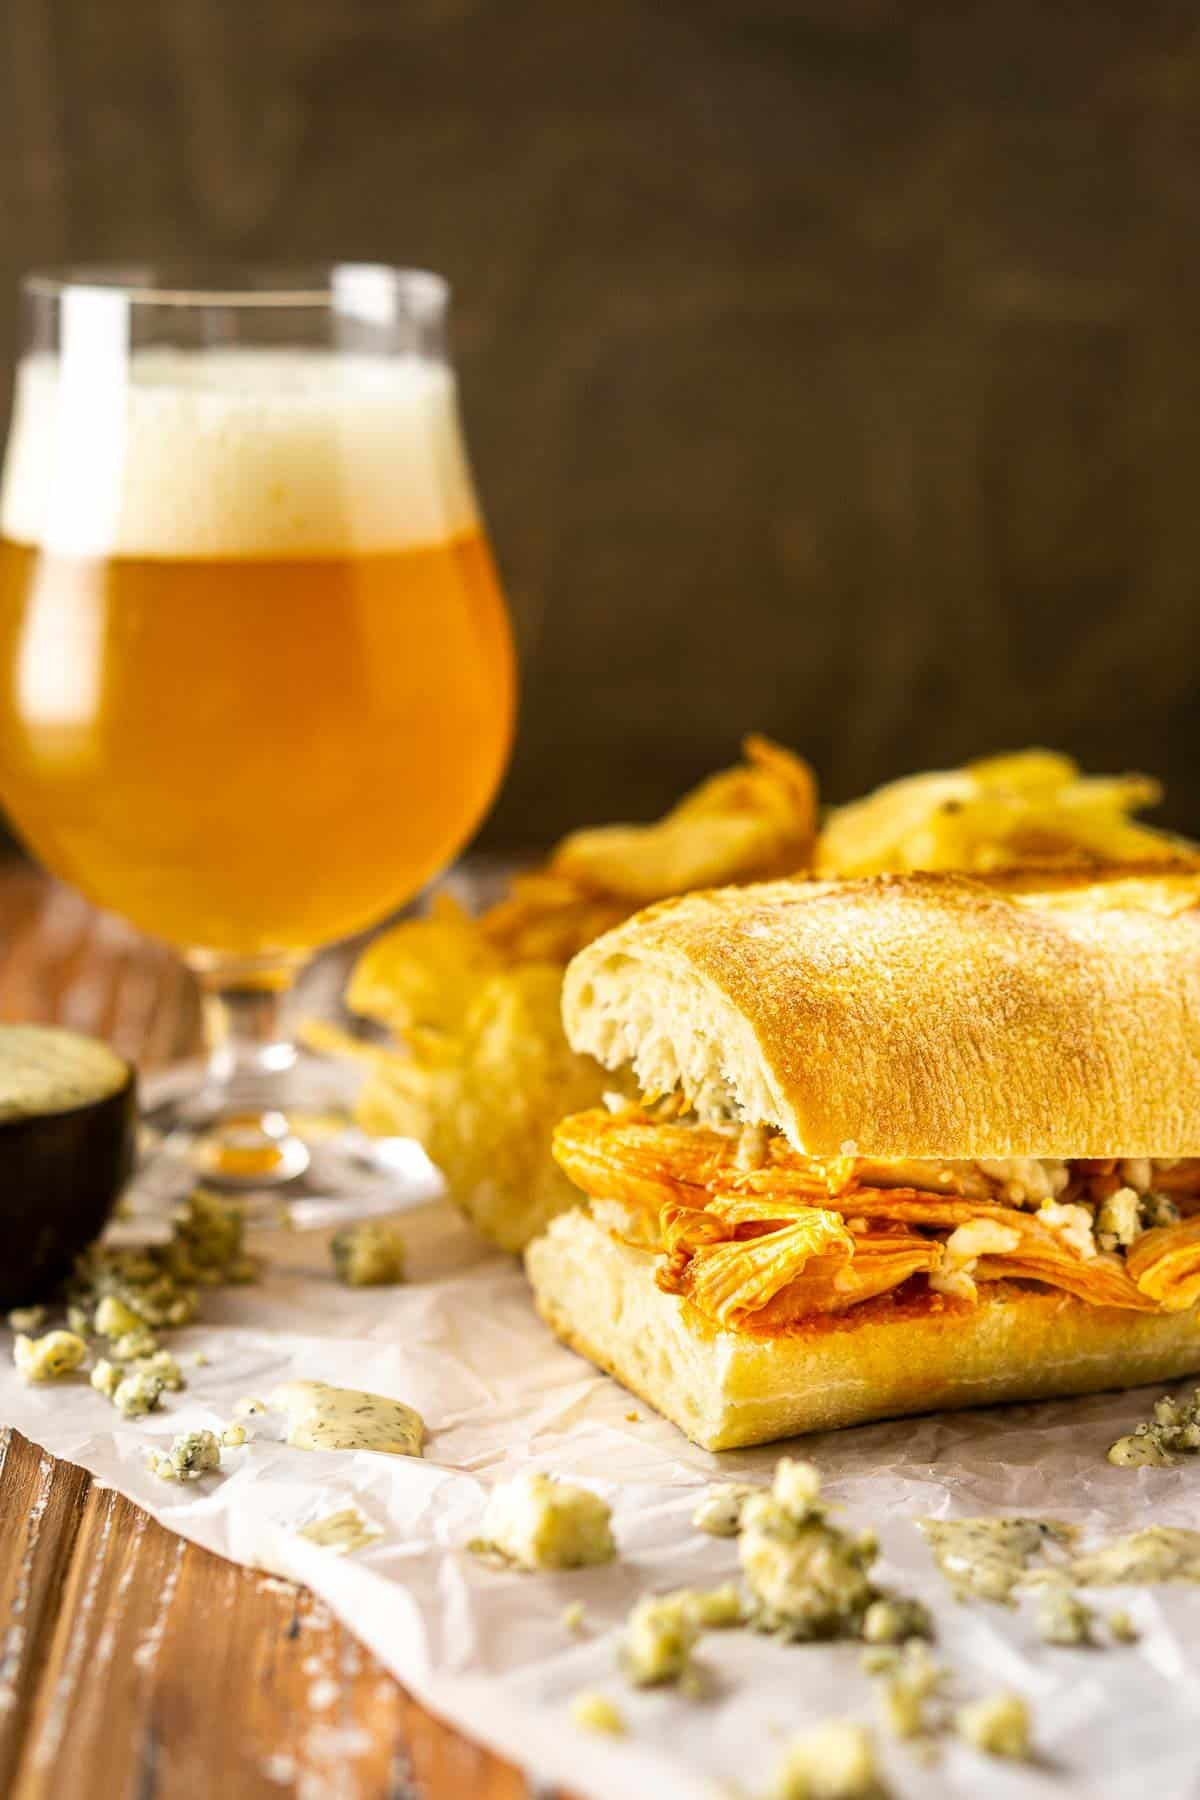 A Buffalo chicken sub with a beer next to it and blue cheese crumbles around it.